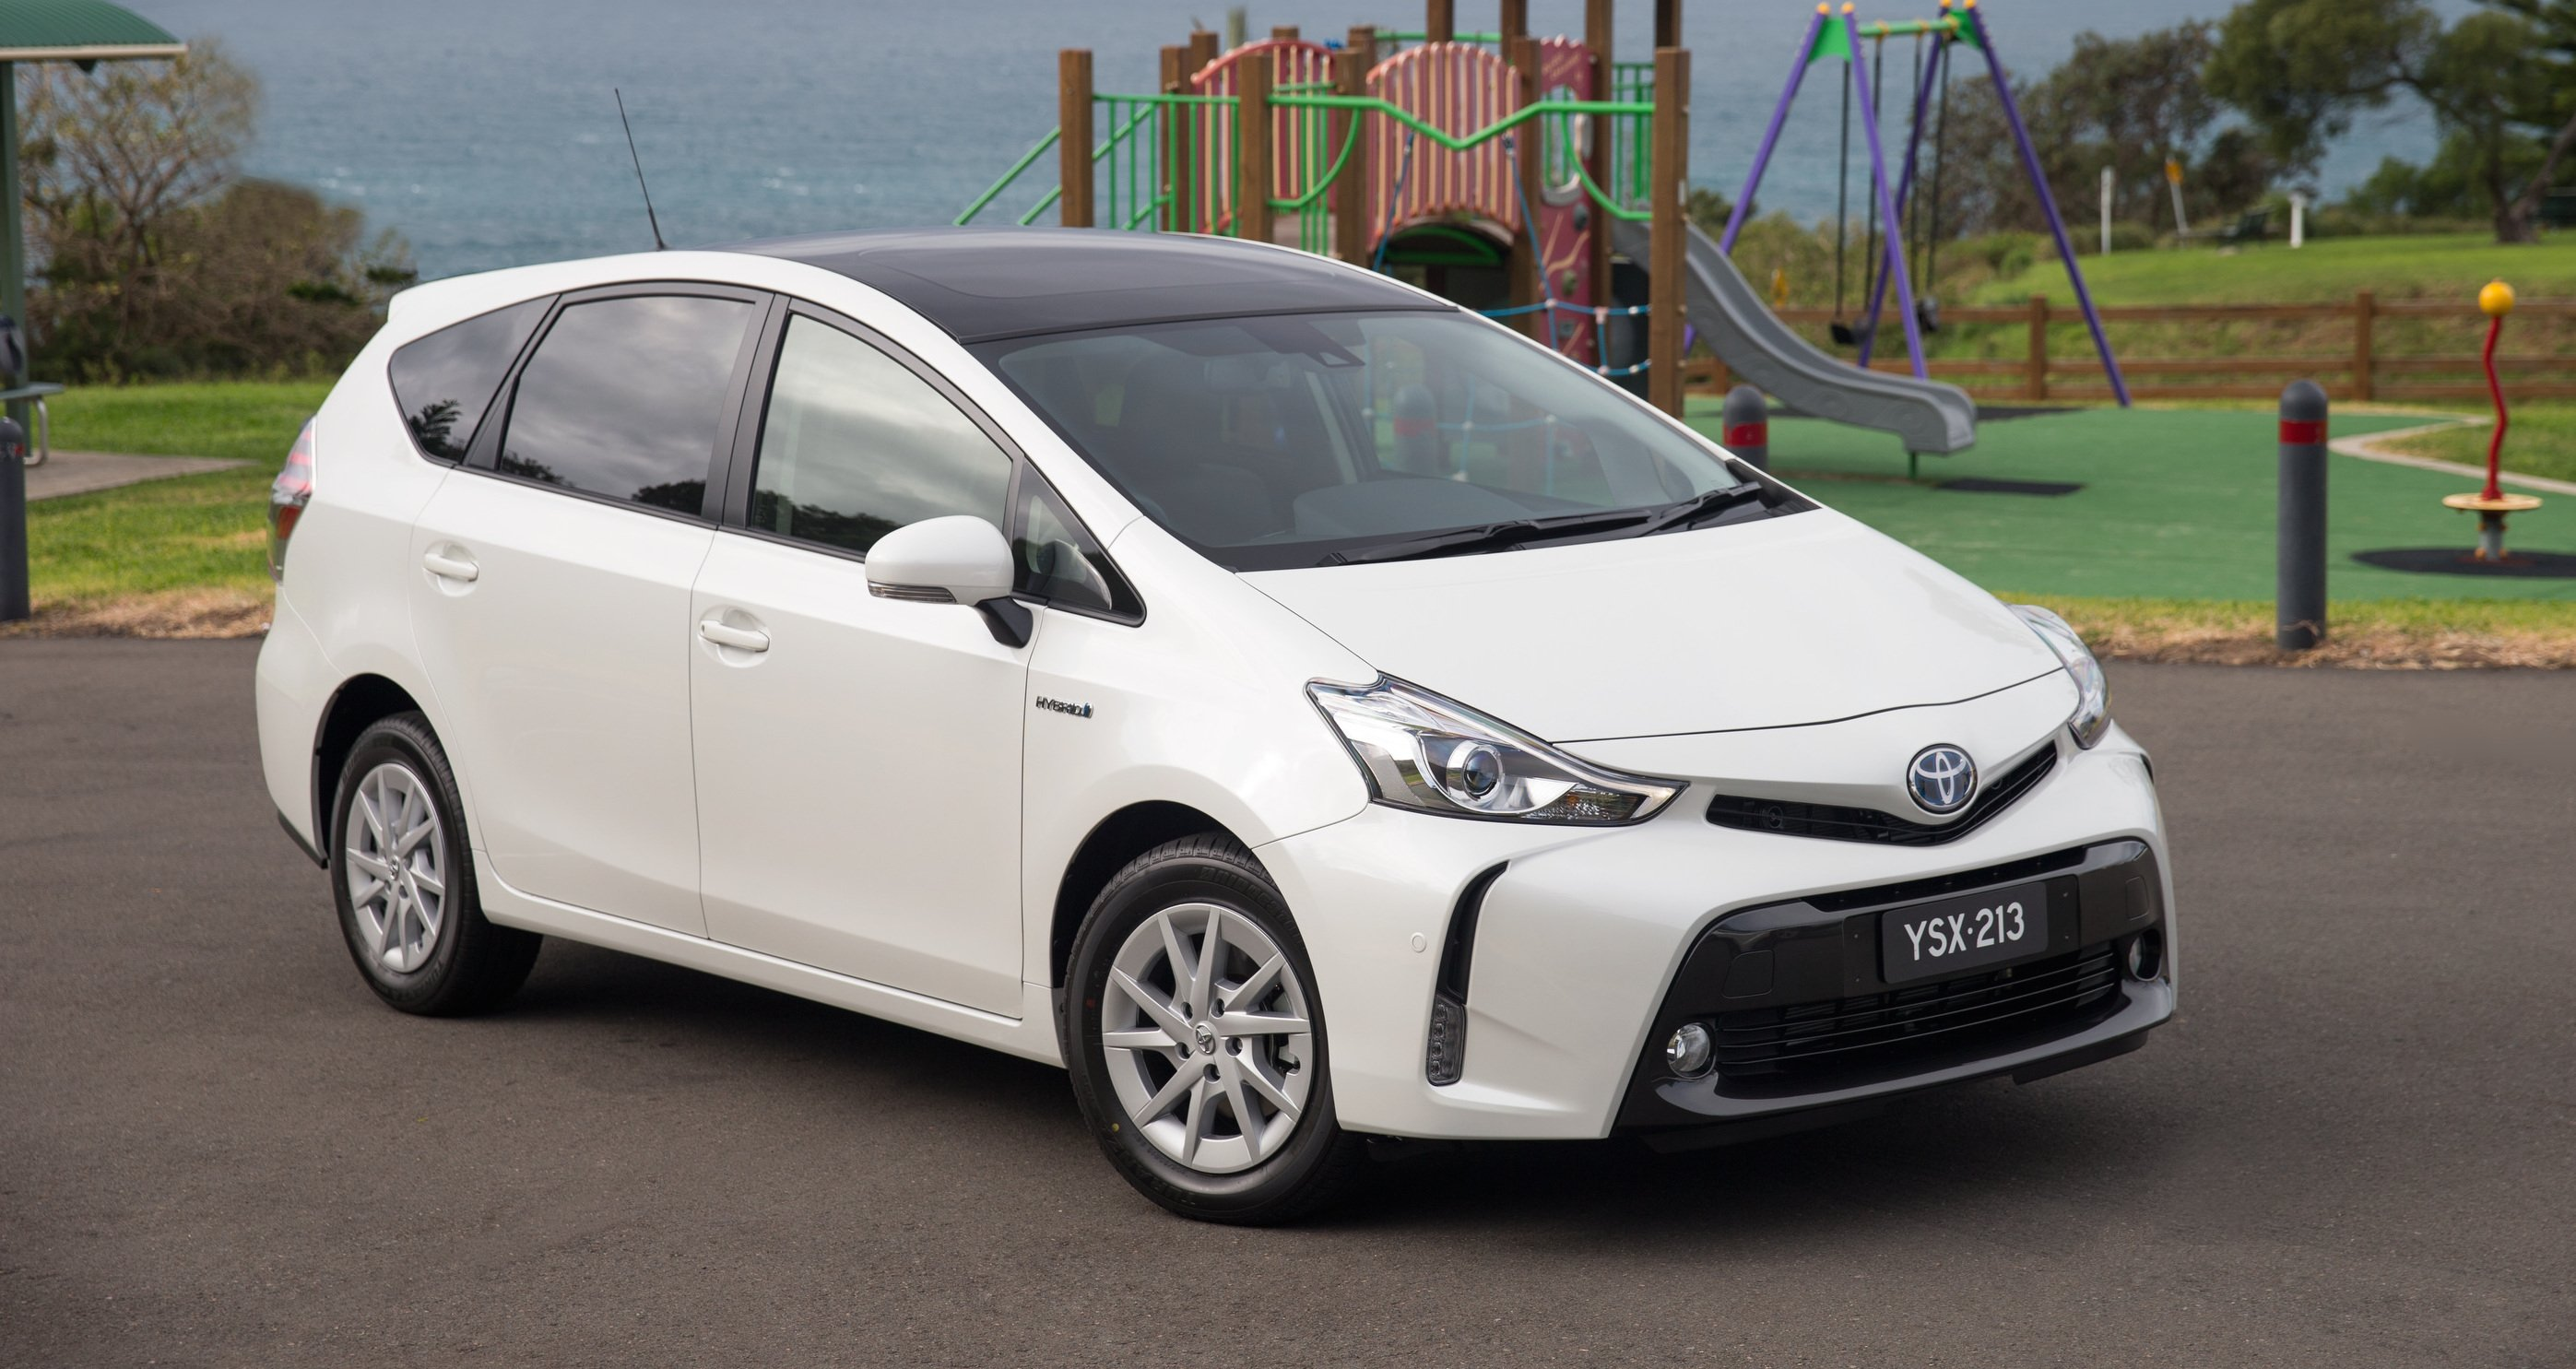 2015 toyota prius v pricing and specifications photos 1 of 7